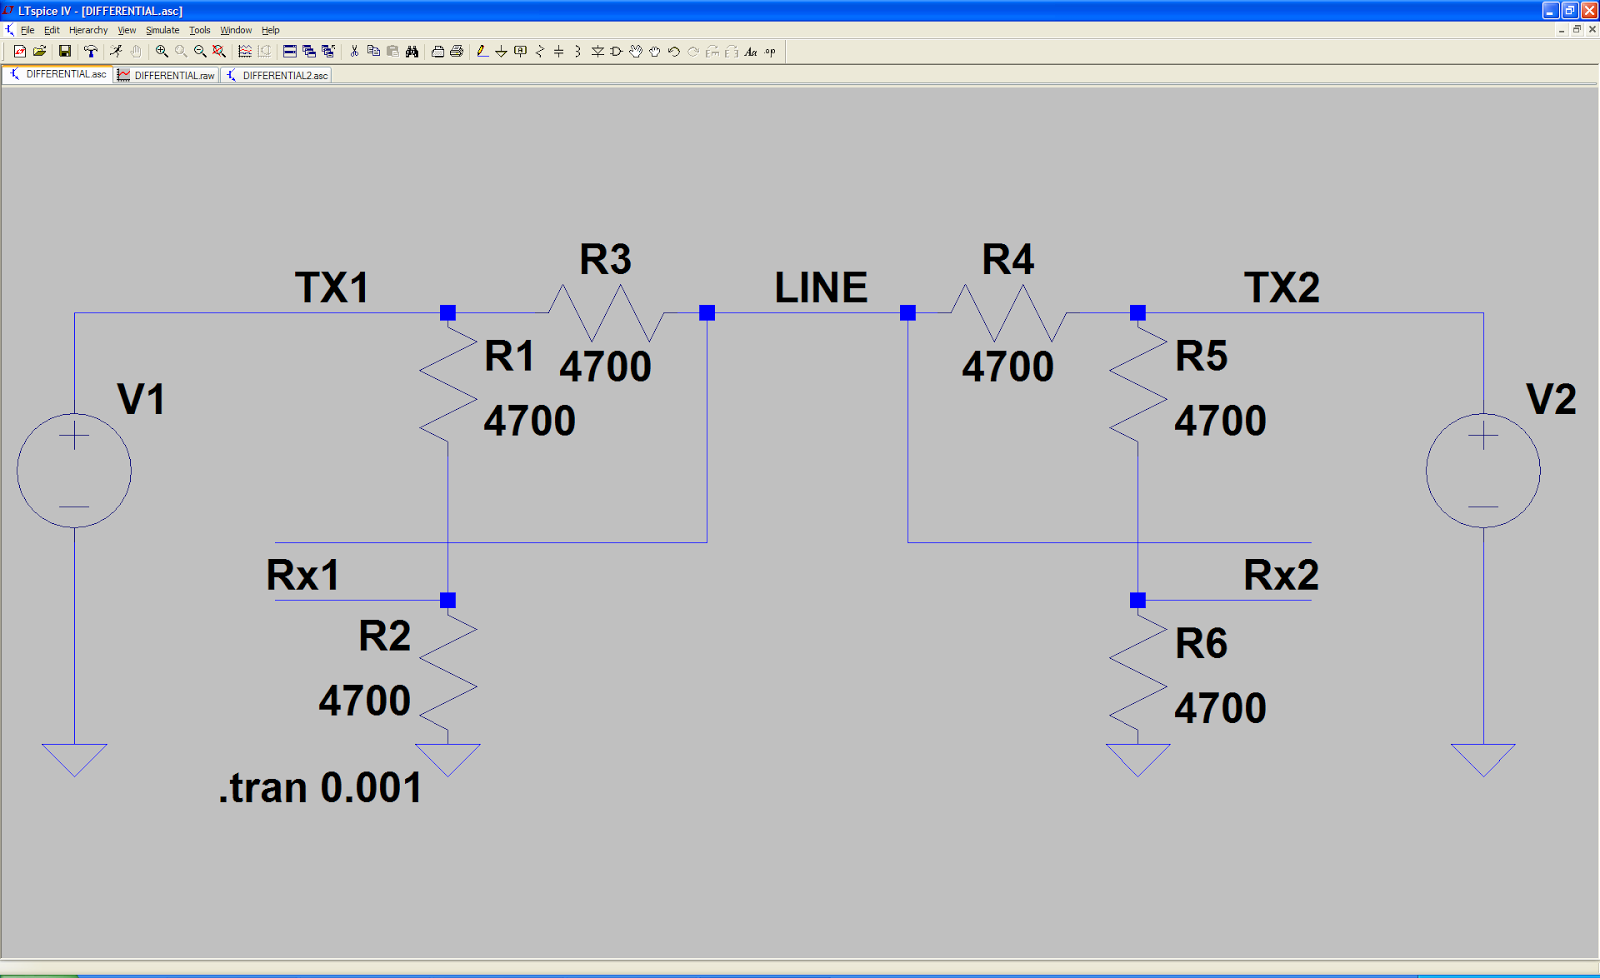 Ludzinc Logic Psu With Overvoltage Protection By Ic 7805 Figure 1 Differential Line Ltspice Model